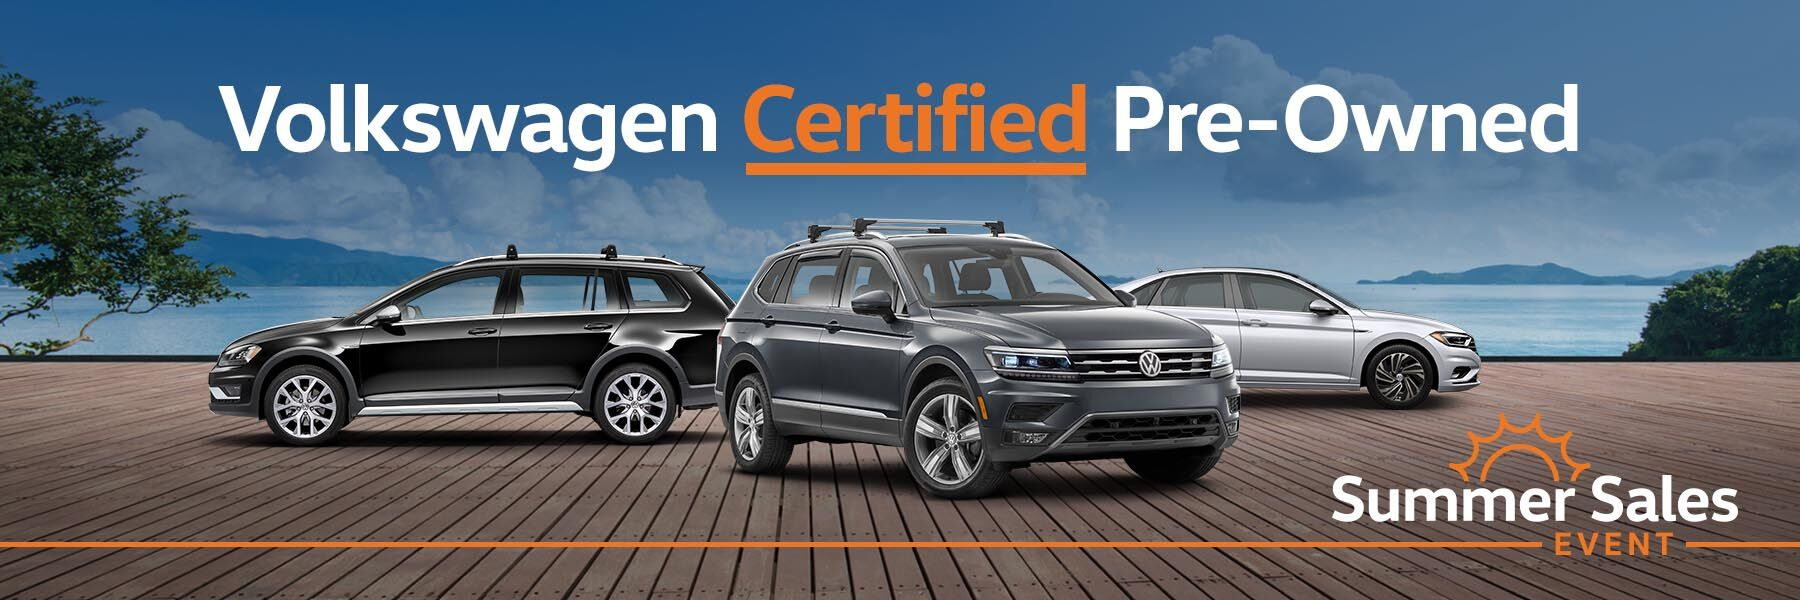 Volkswagen Certified Pre-Owned in Green Bay, WI